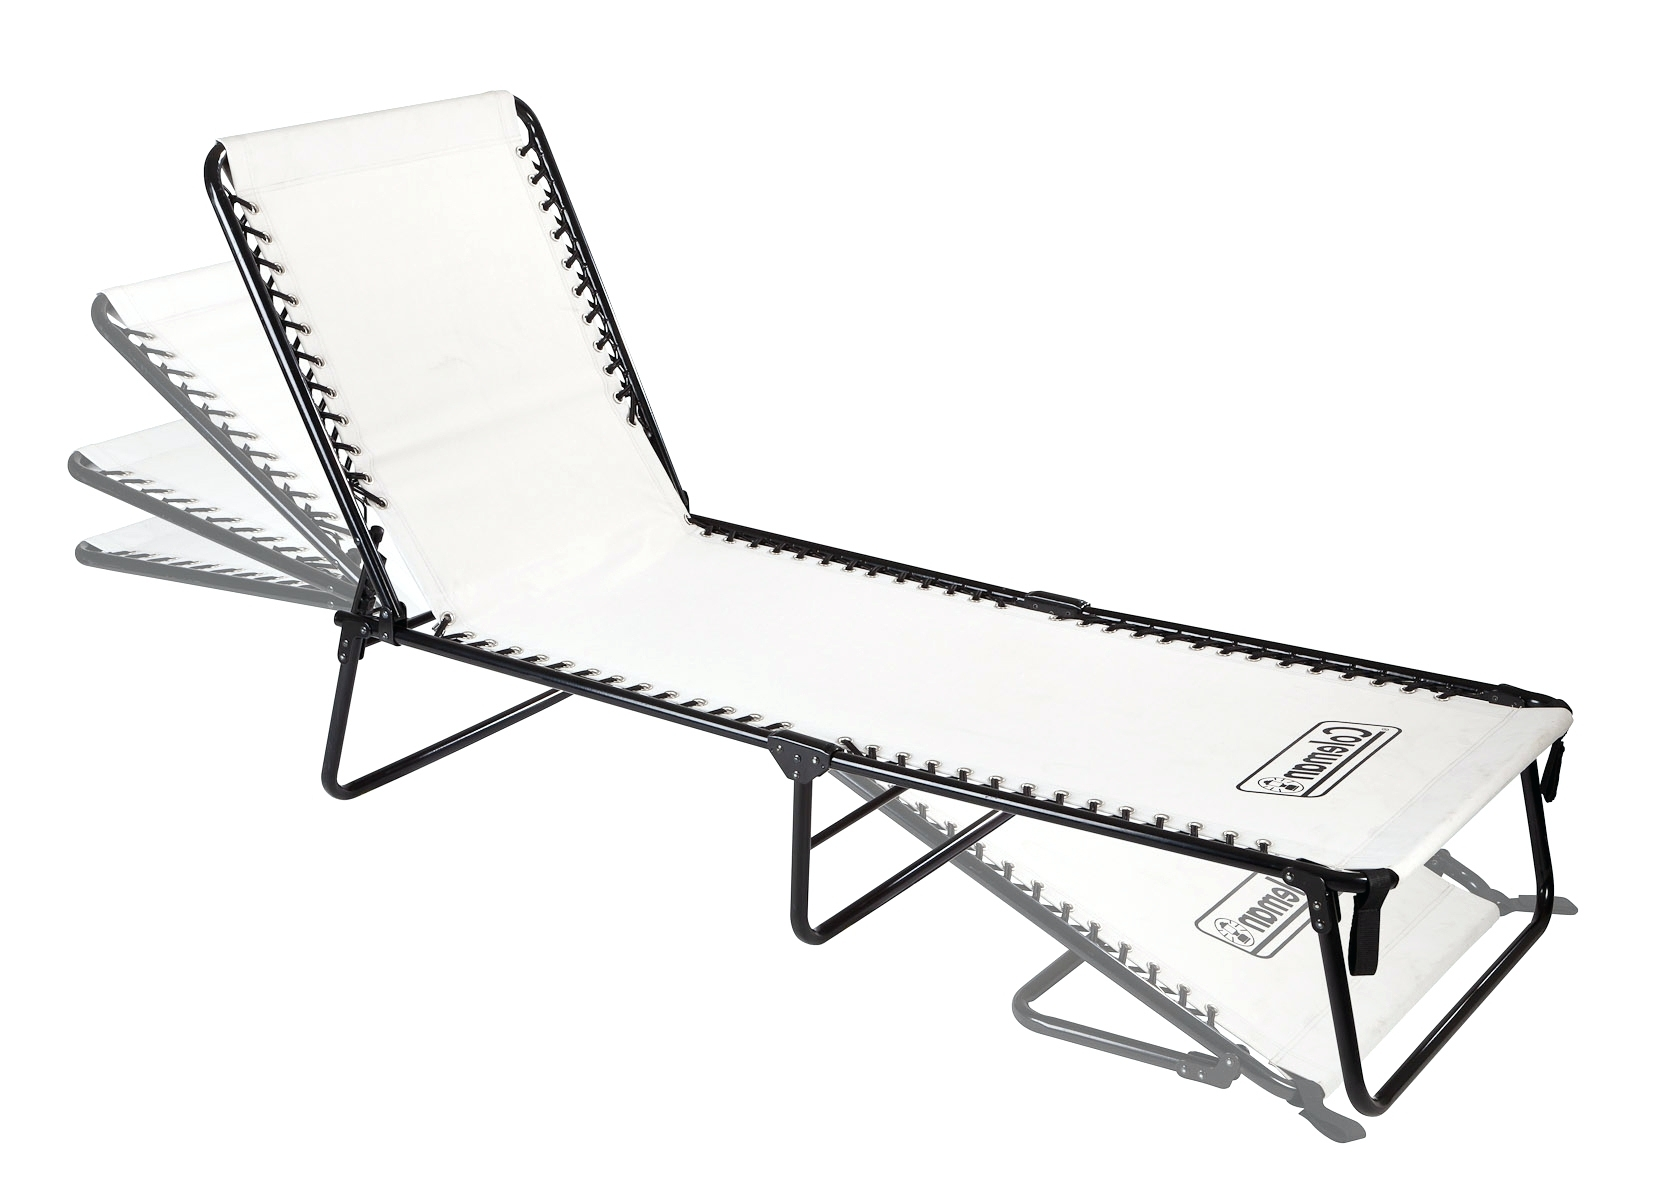 Portable Chaise Lounge Chairs Outdoor • Lounge Chairs Ideas In Most Current Portable Outdoor Chaise Lounge Chairs (View 3 of 15)